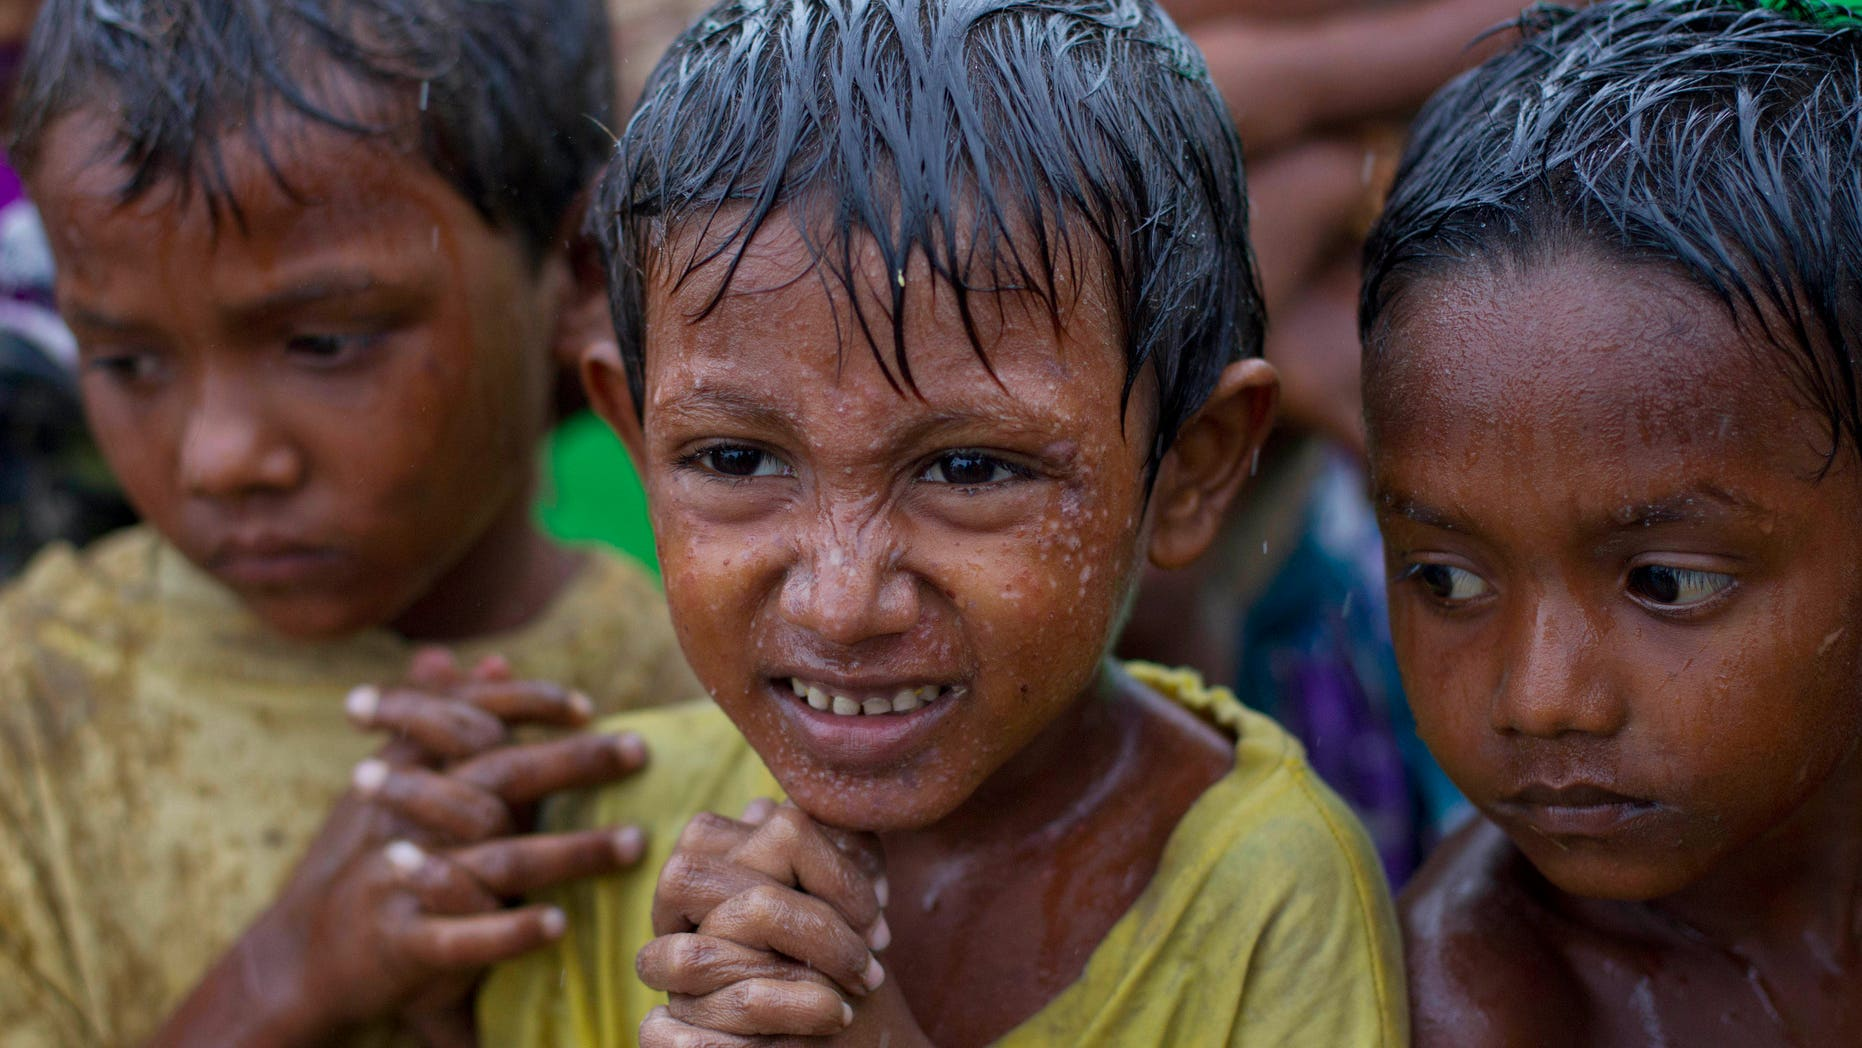 May 14, 2013: Internally displaced Rohingya boys shiver in rain in a makeshift camp for Rohingya people in Sittwe, northwestern Rakhine State, Burma, ahead of the arrival of Cyclone Mahasen.